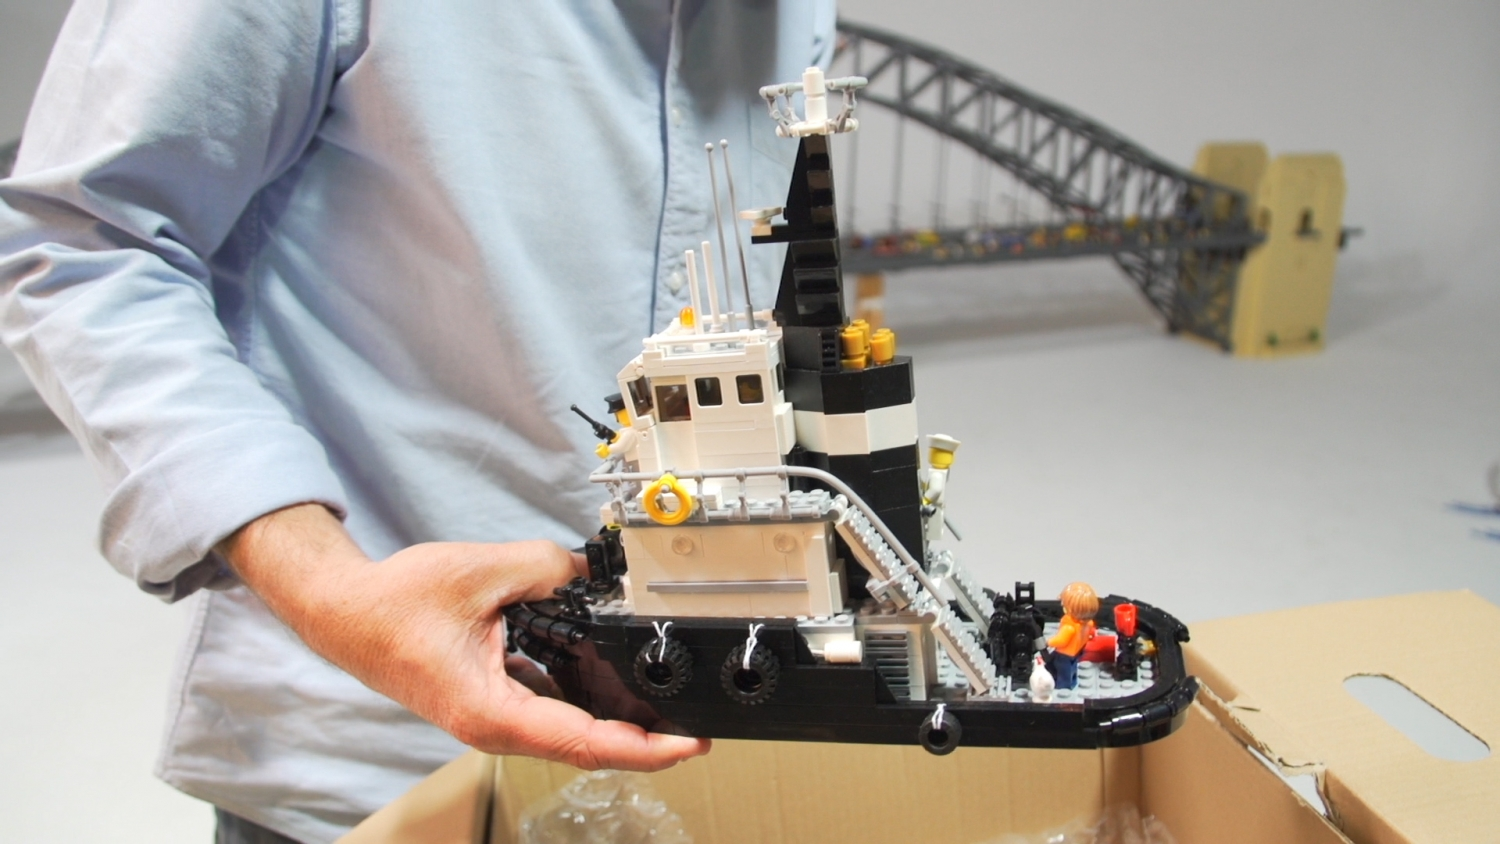 Colourful model of tugboat built out with Lego with minifig passengers and tyre bumpers